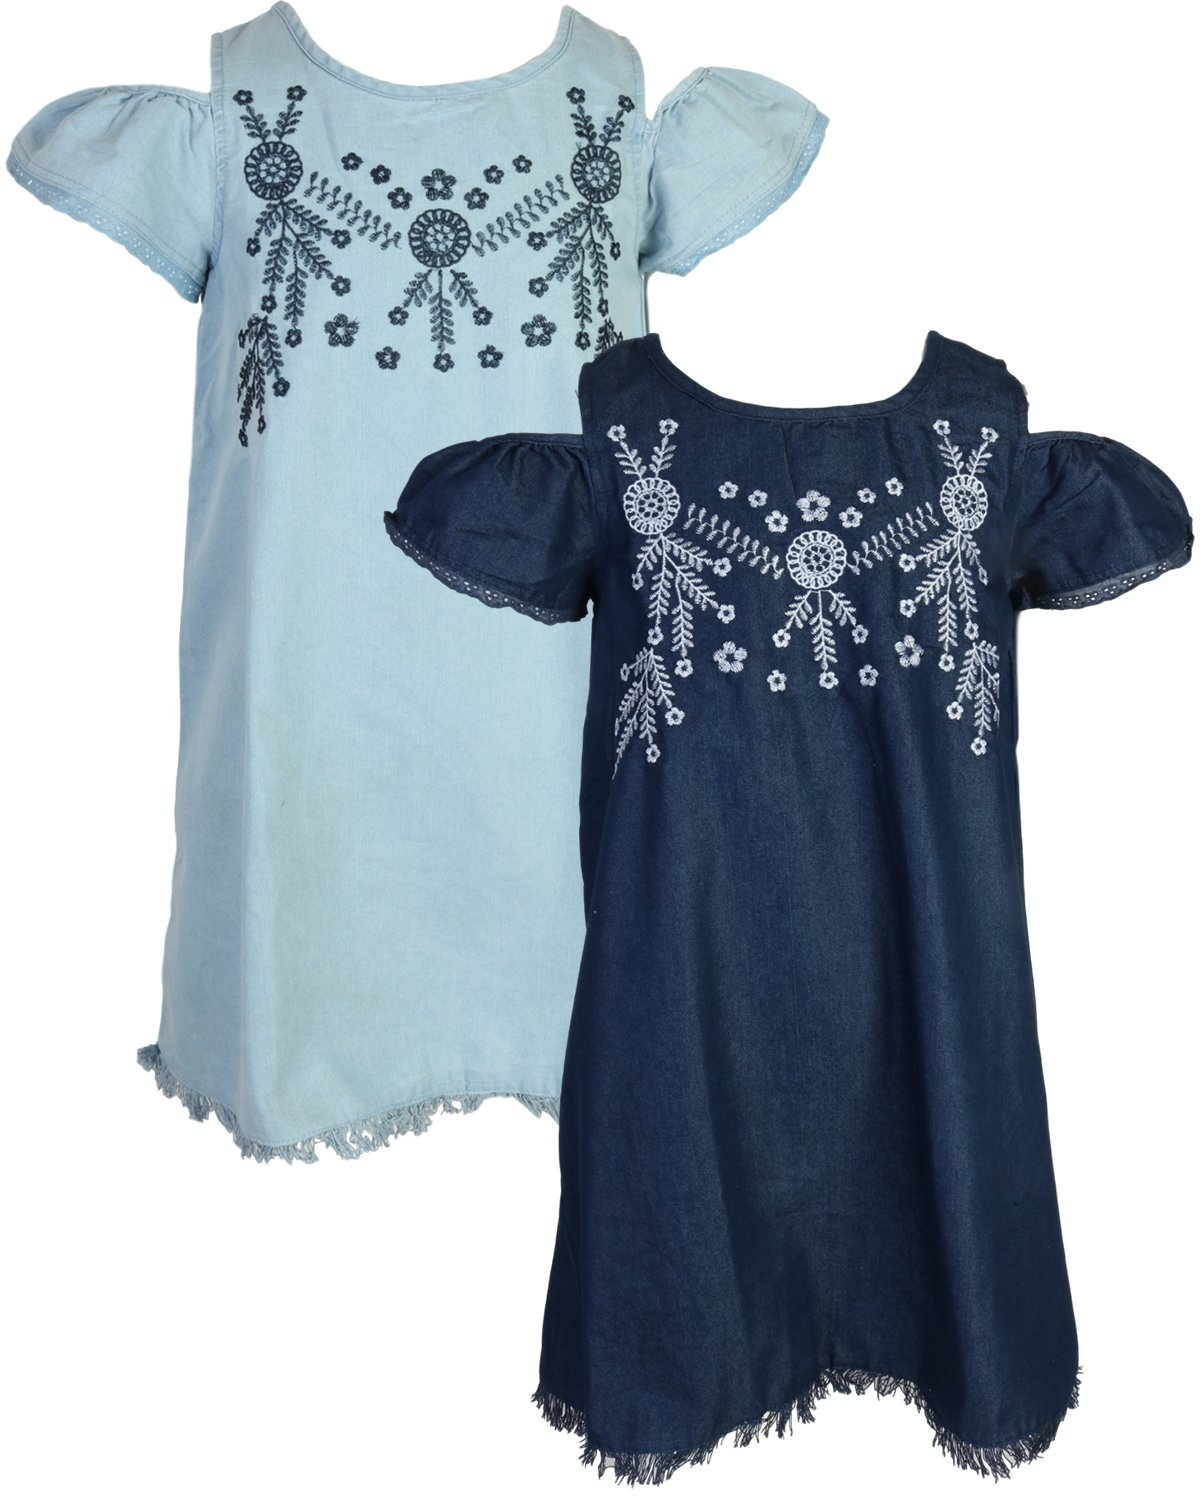 dollhouse Girls Sleeveless Spring/Summer Casual Denim Dress (2 Pack) Fringe Trim, Size 7/8'